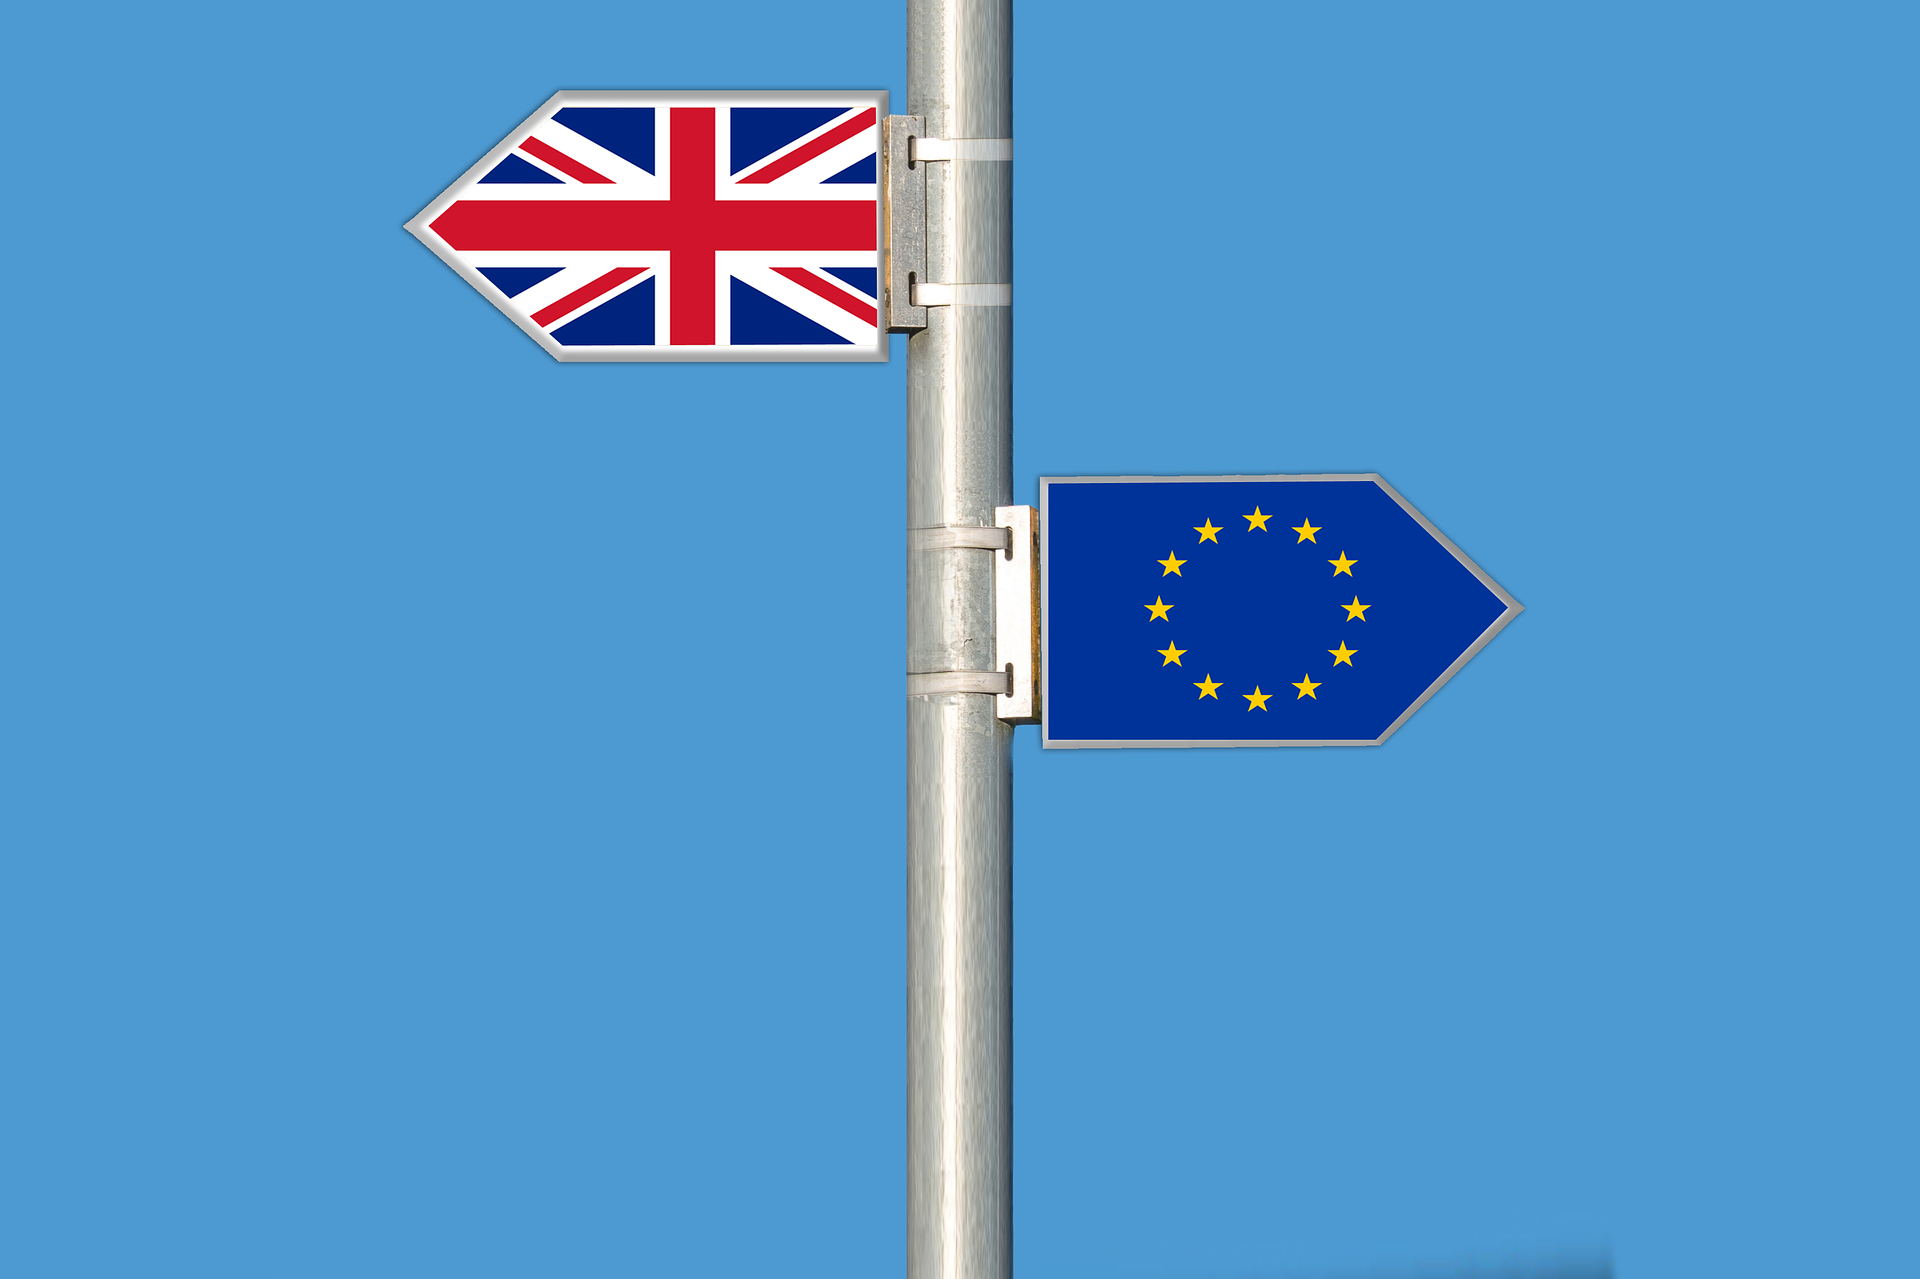 A signpost with union jack sign and EU flag sign.